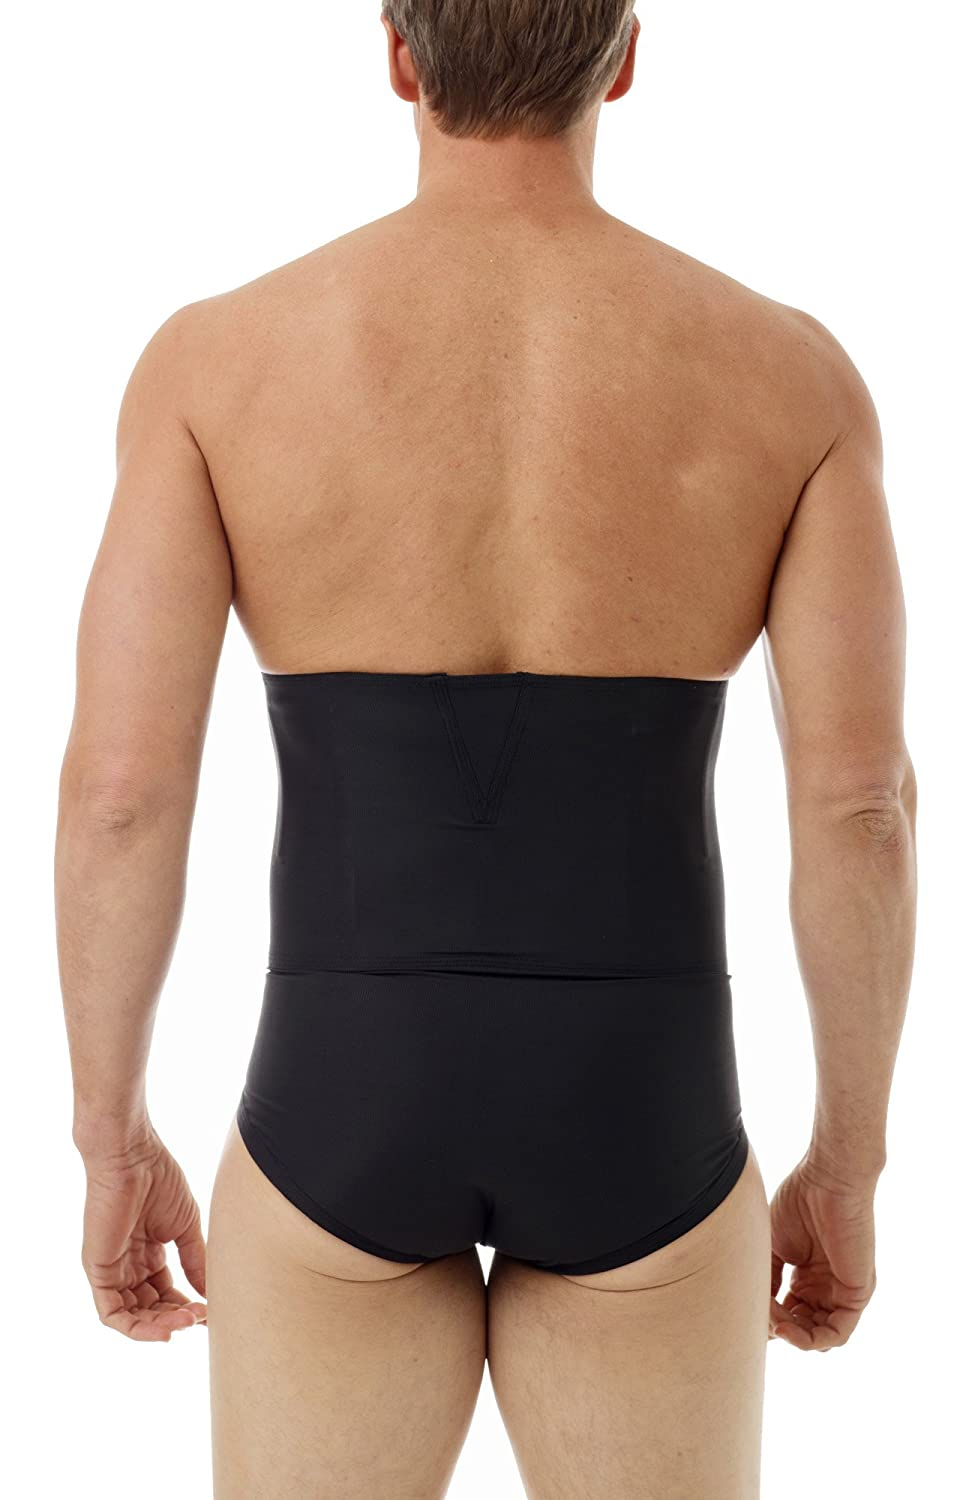 8f74364fe2 Underworks Zip-N-Trim Support Brief Girdle for Men with 8-inch Powerband -  for Tummy Trimming